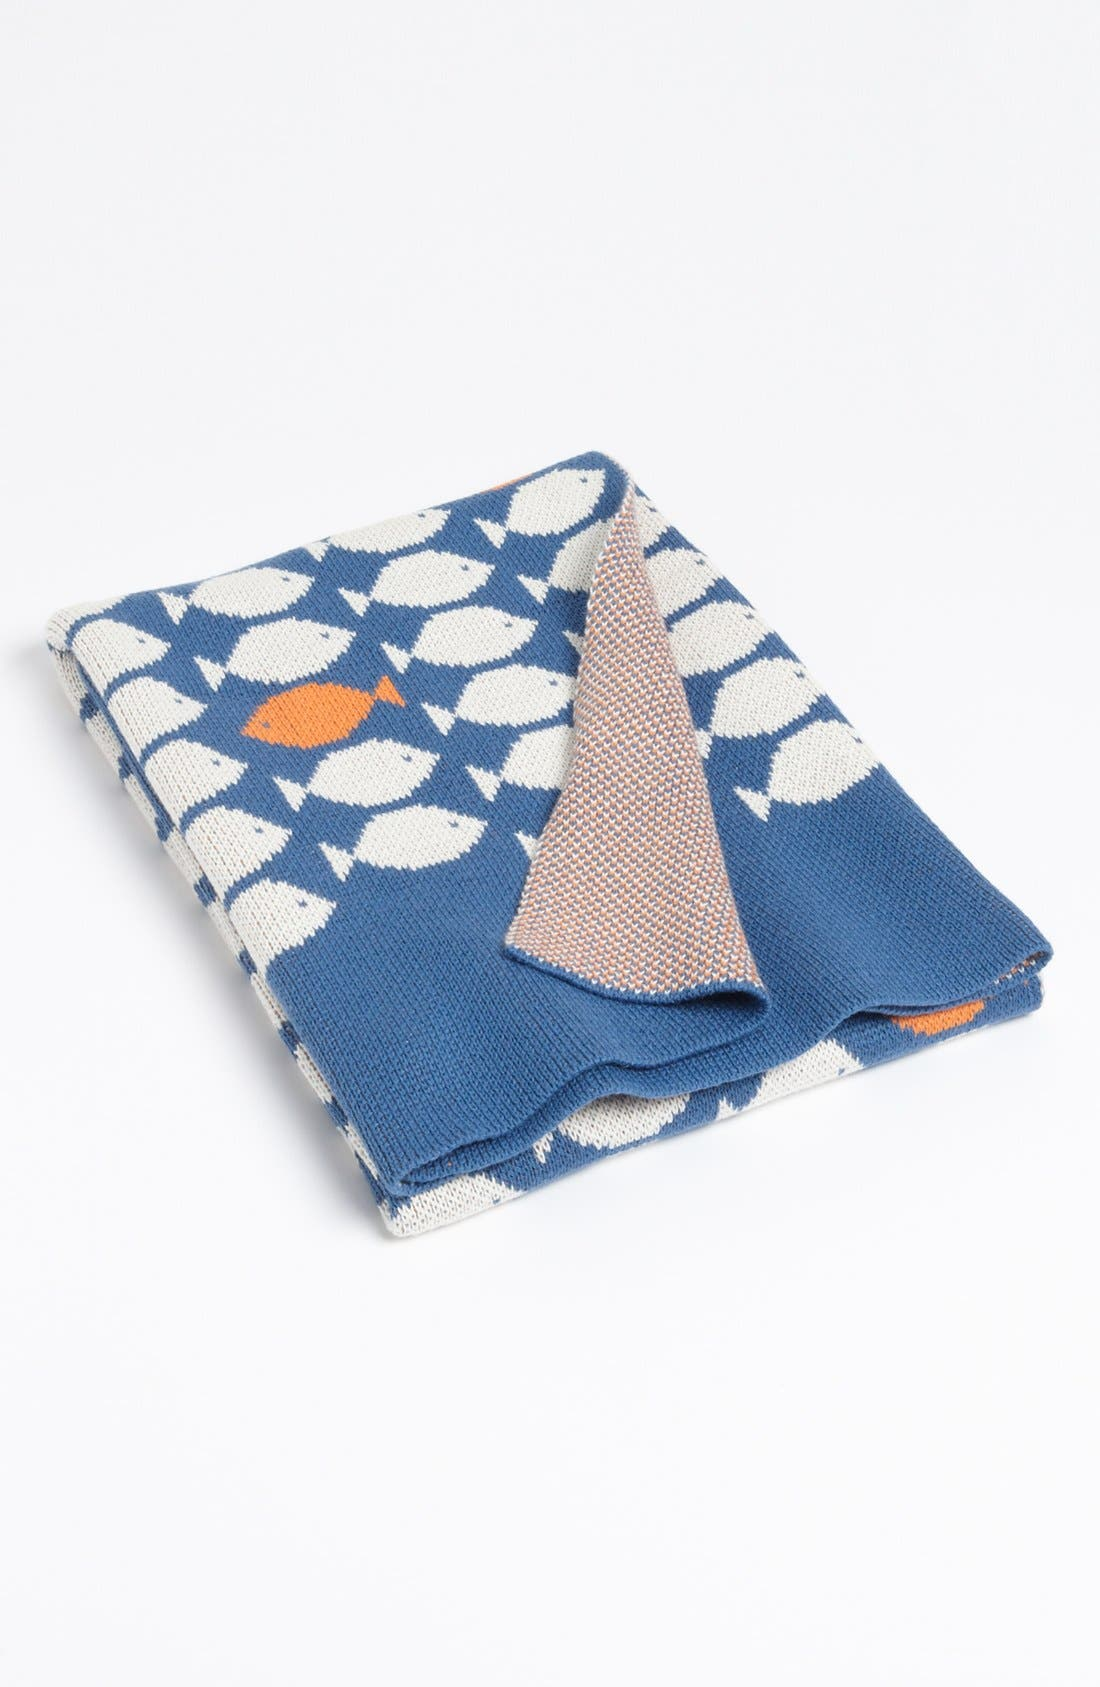 Main Image - Stem Baby 'Fashion' Organic Cotton Blanket